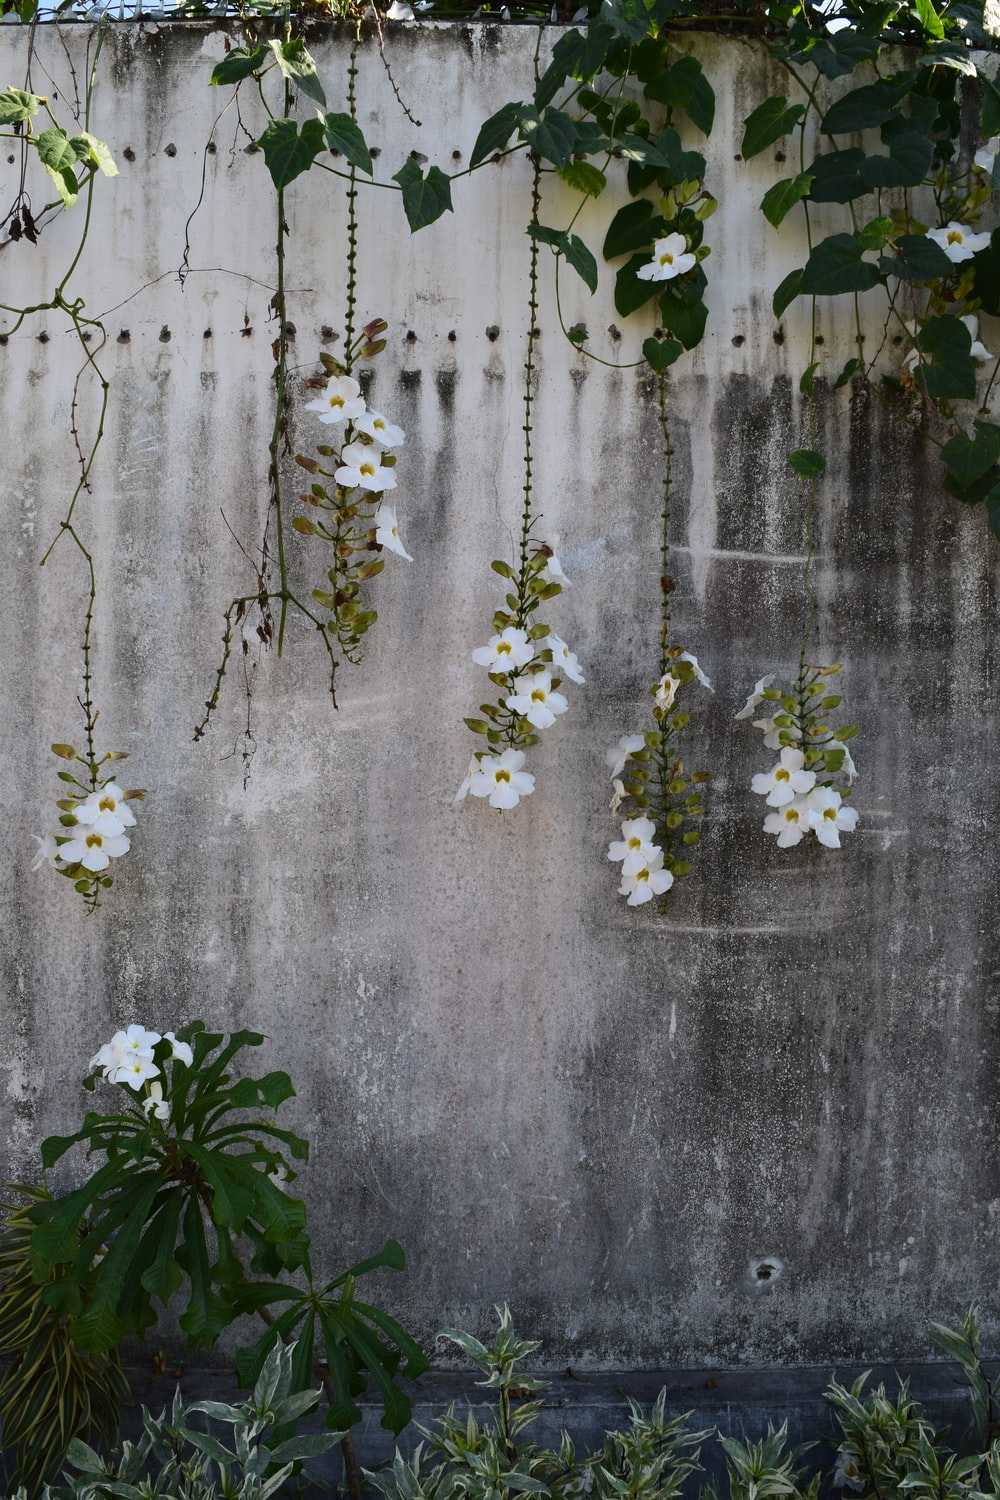 white and yellow flowers on gray textile